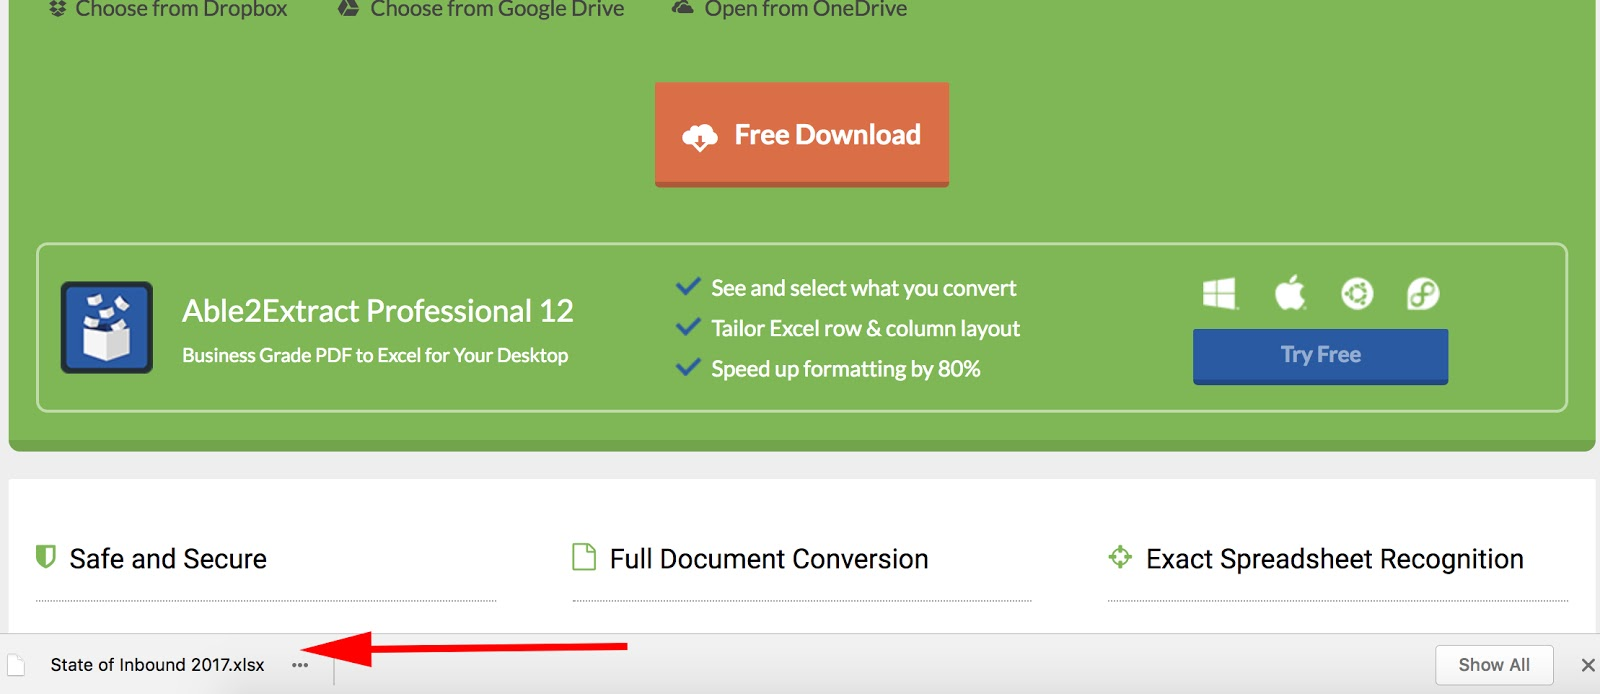 How to Convert a PDF to Excel: Free Tools & Instructions